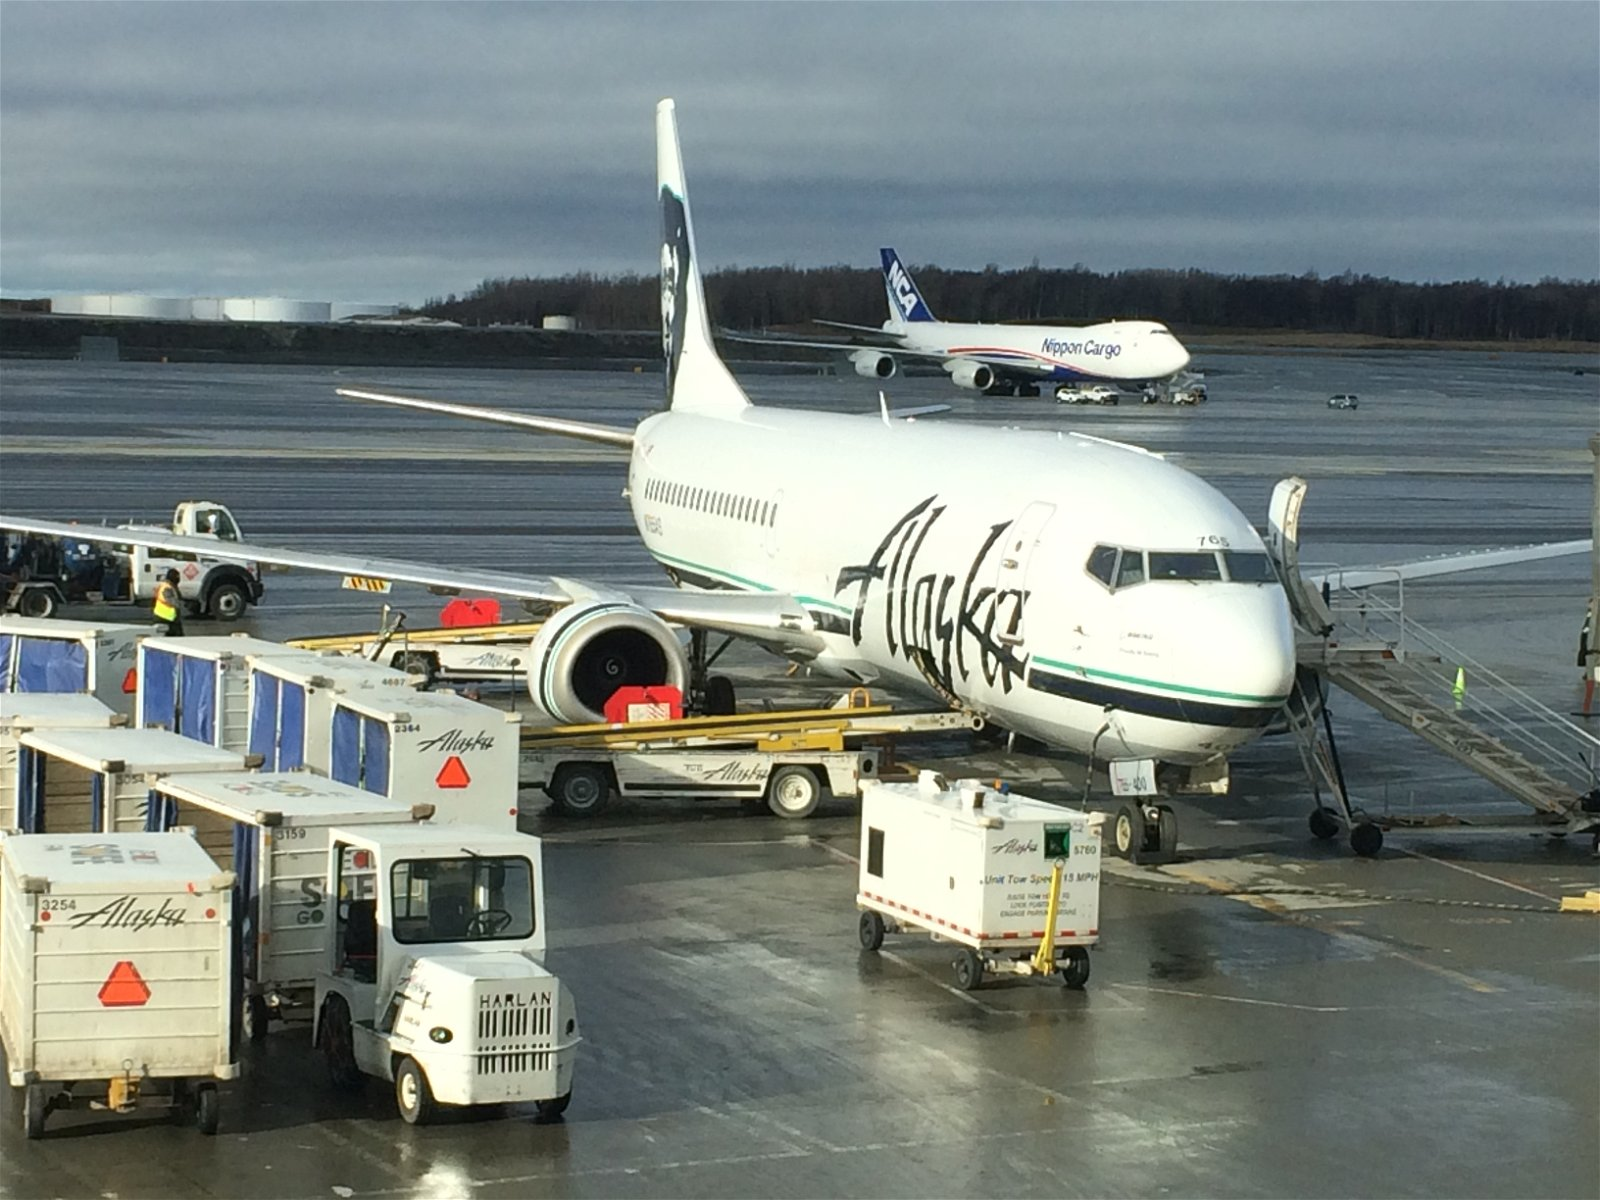 It turns out that Alaska planes aren't just in Seattle.